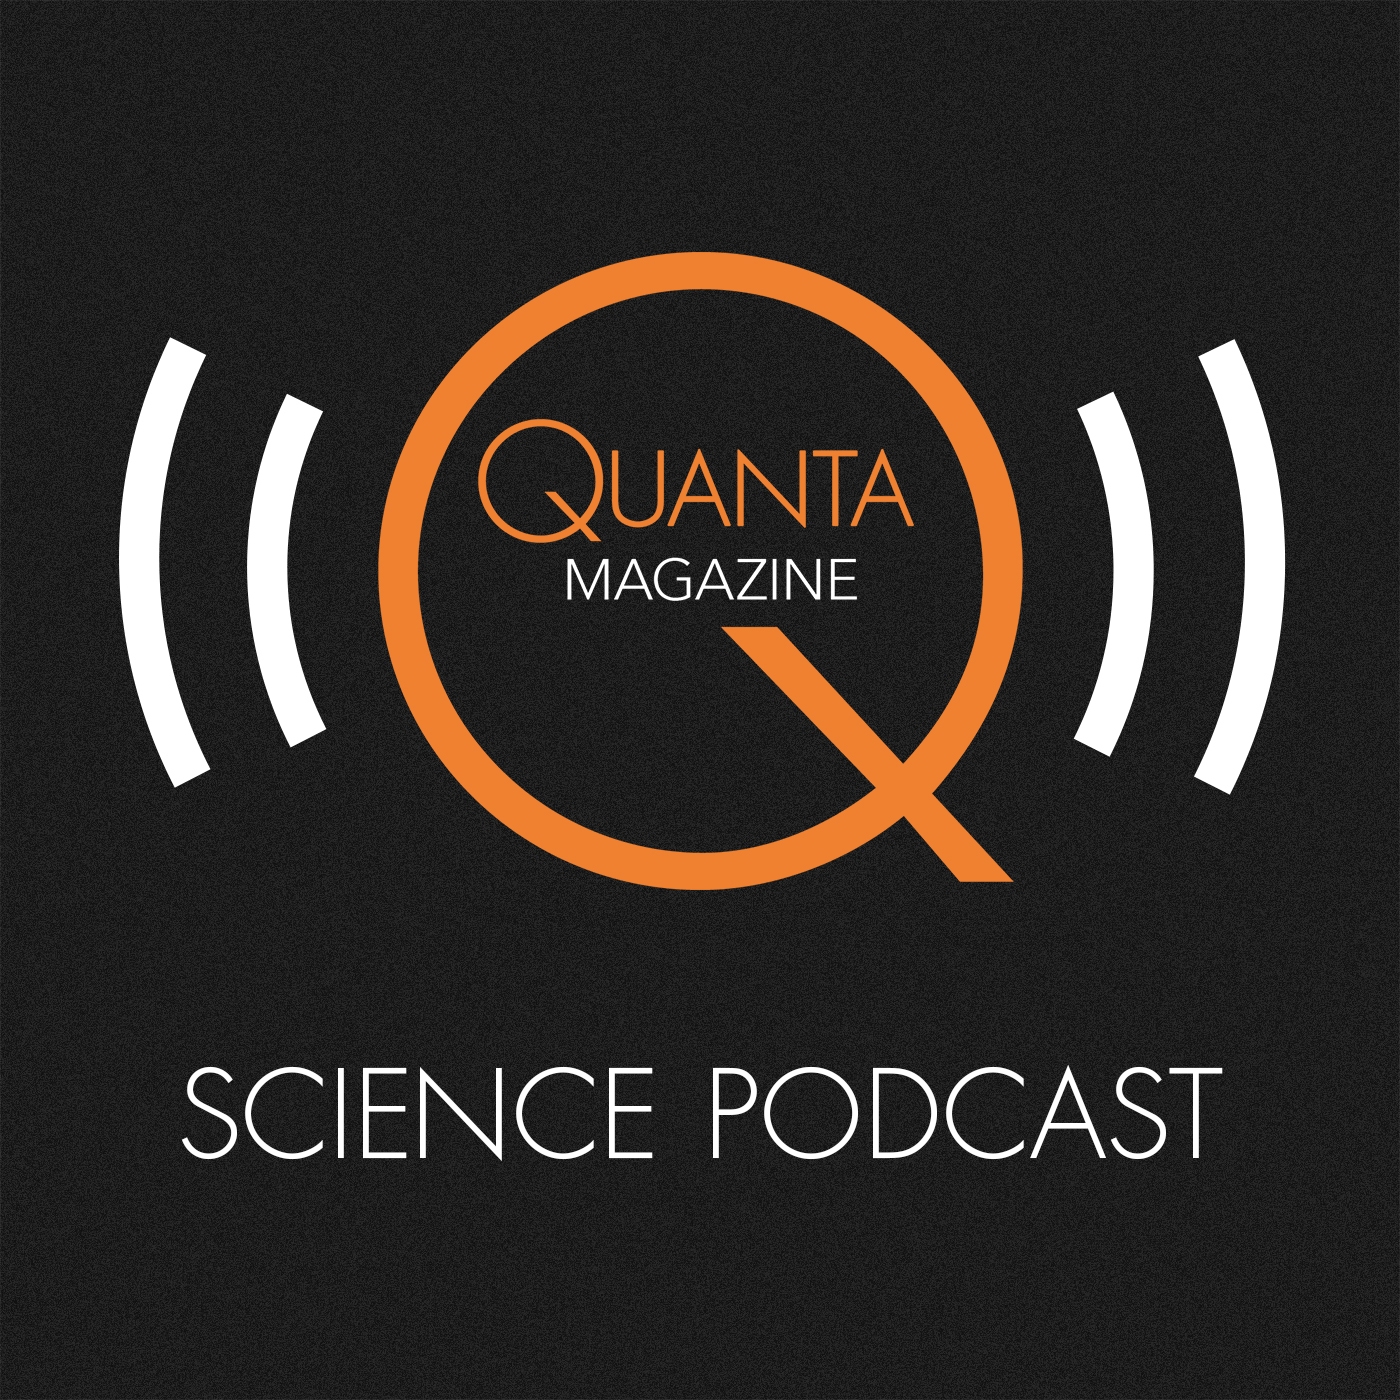 Quanta Science Podcast